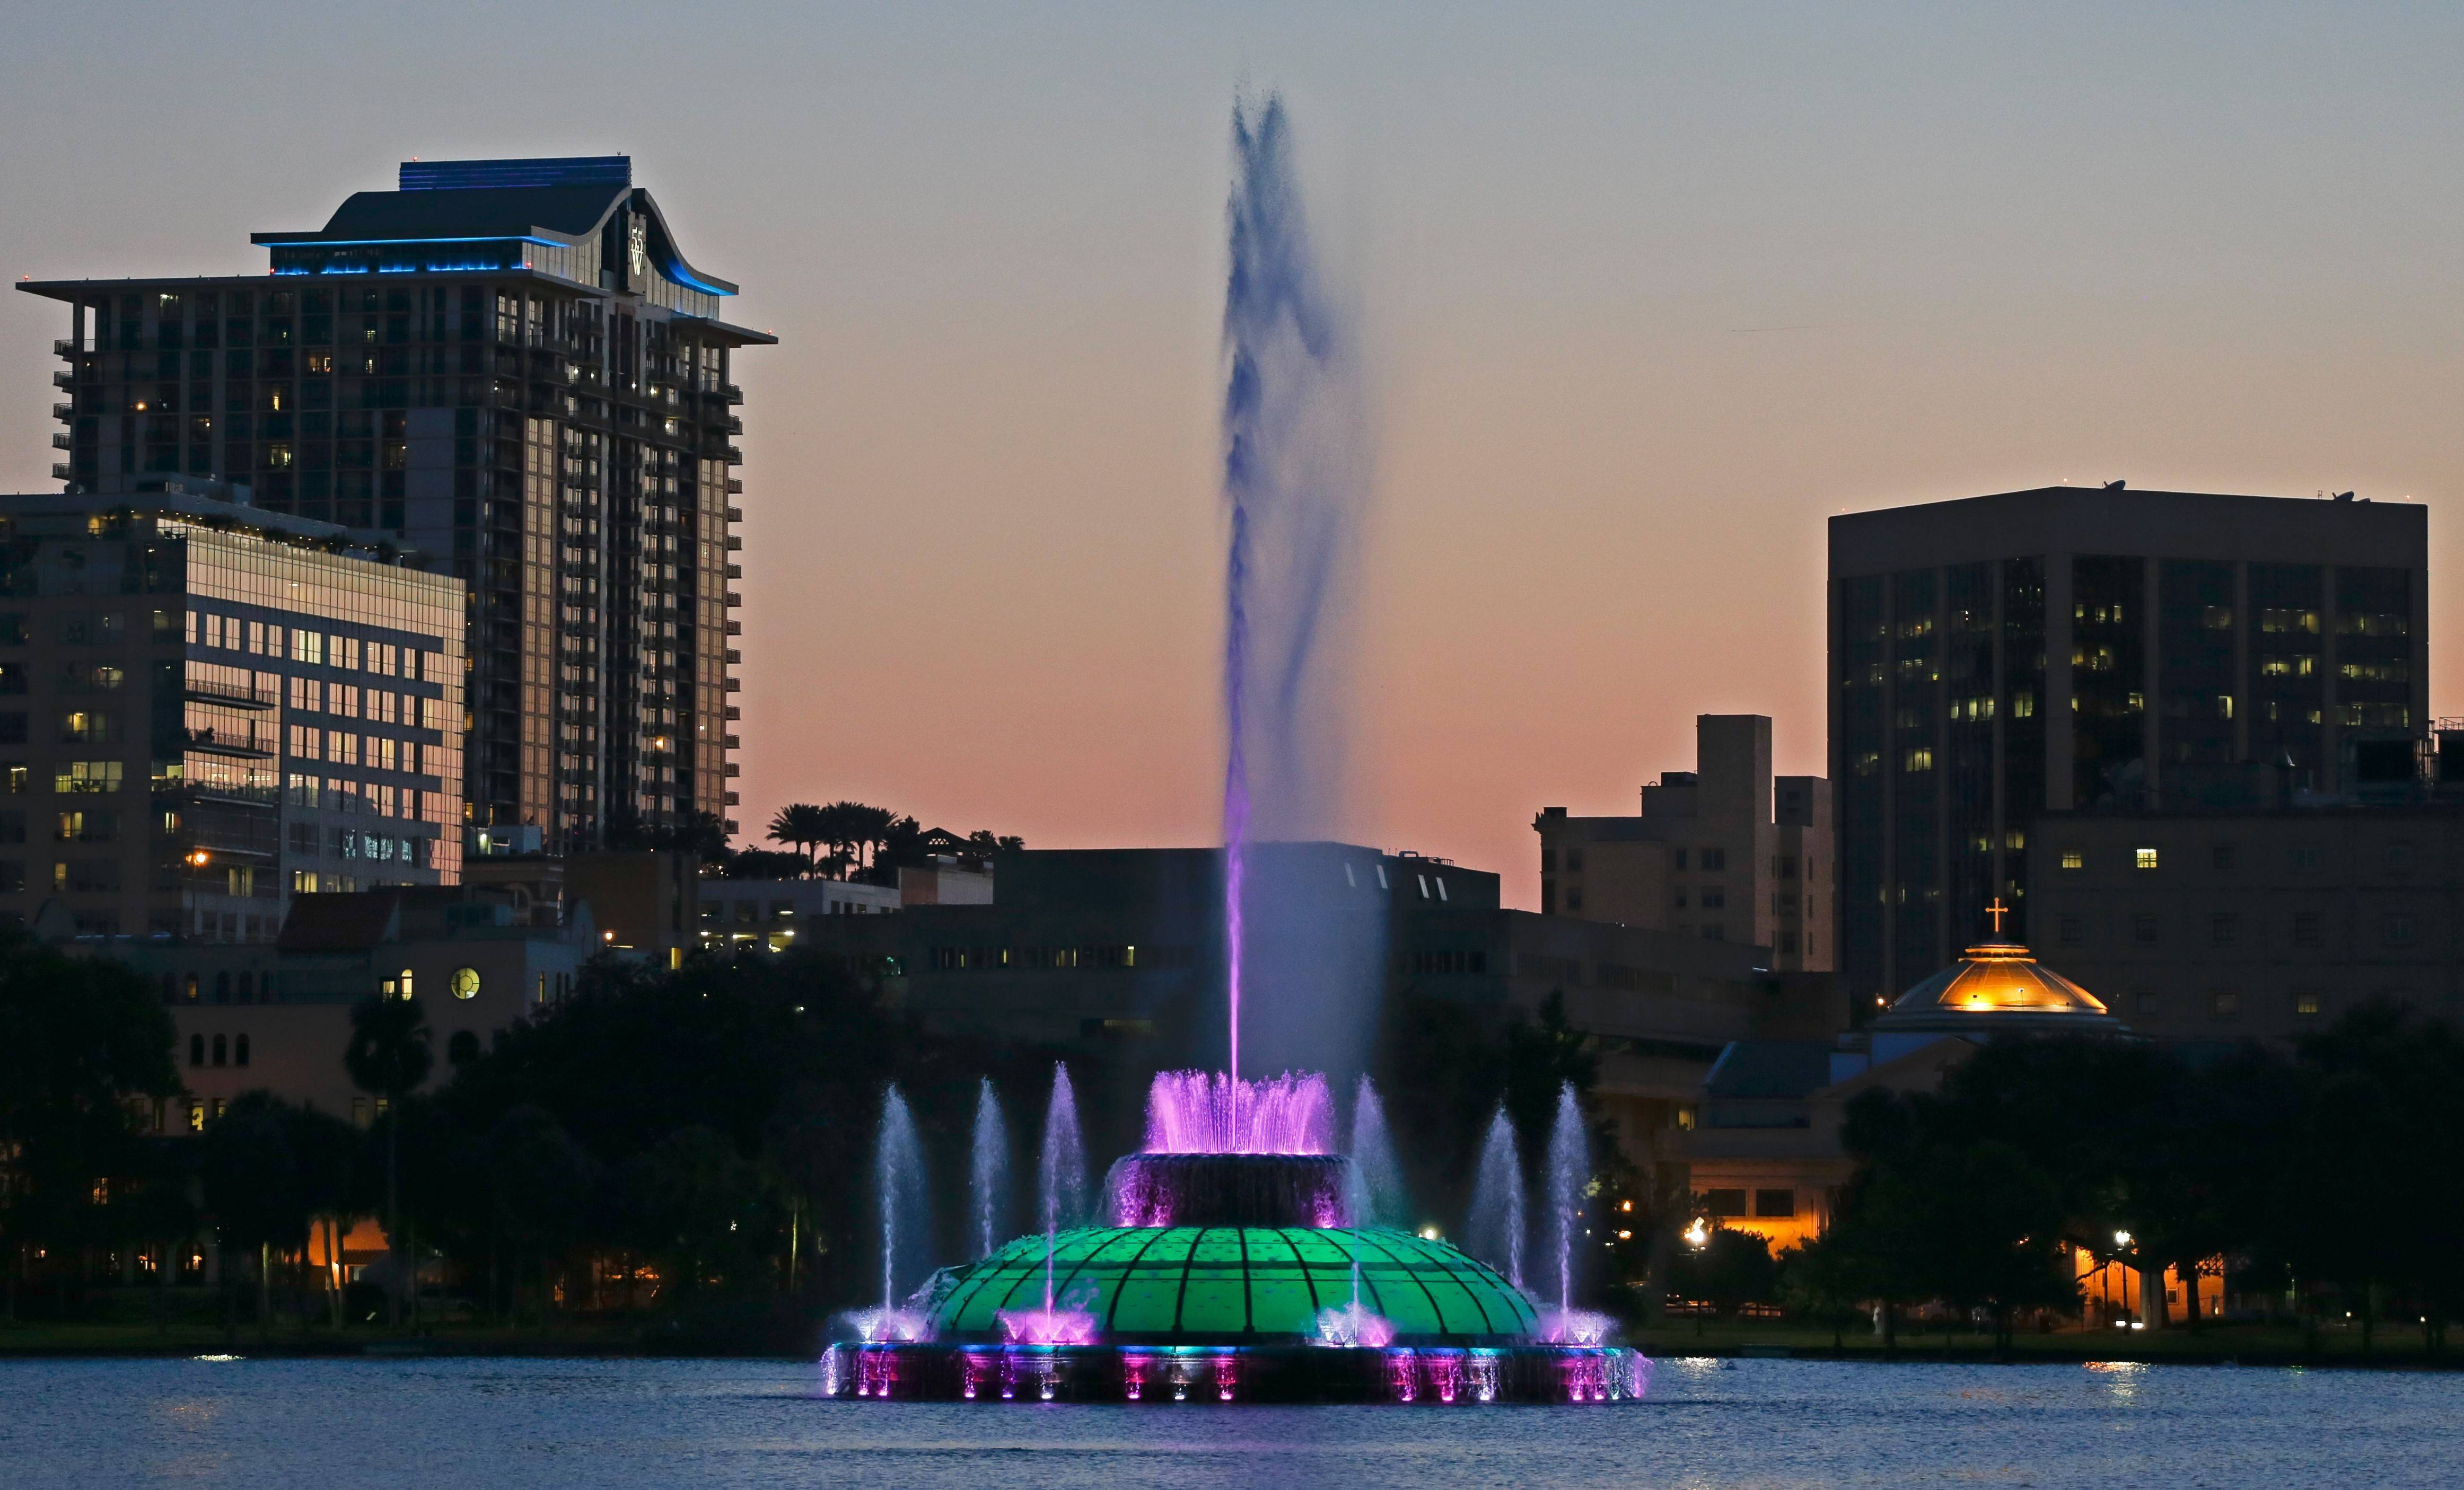 Water rises from a five-decade-old, green, multitiered fountain on Lake Eola that is the official icon of the city as the sun sets in Orlando, Fla. Every night, passers-by are treated to a six-minute water show from the fountain featuring multicolored bursts of water timed to music.